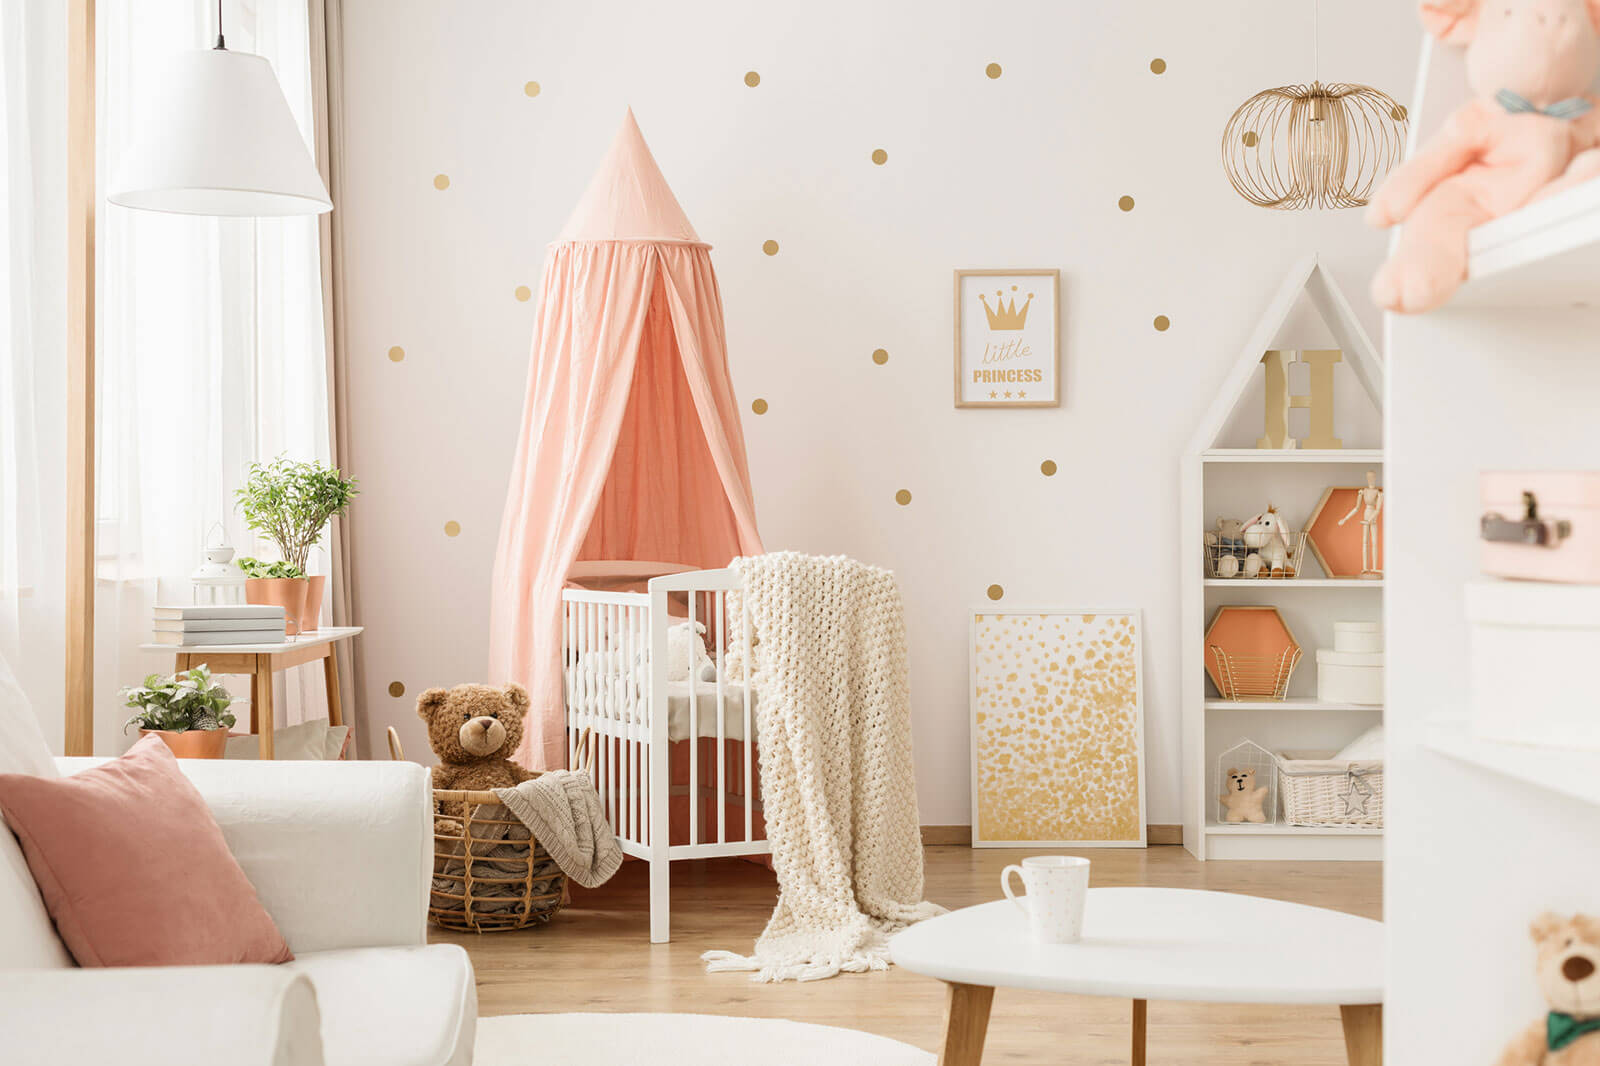 baby nursery wallpaper and wall decor ideas